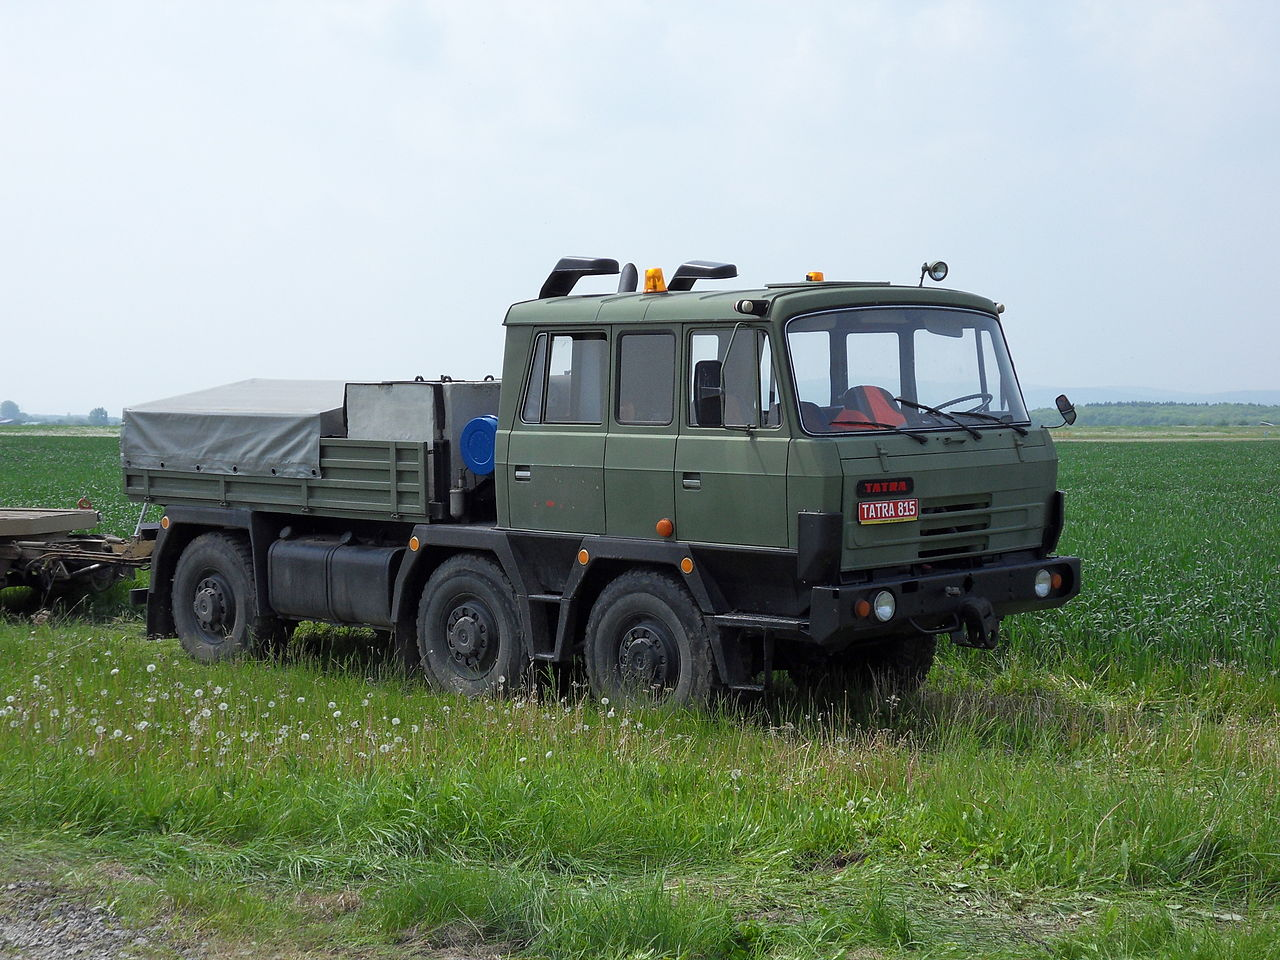 File:Tatra-815 6x6 shot 2010.JPG - Wikimedia Commons